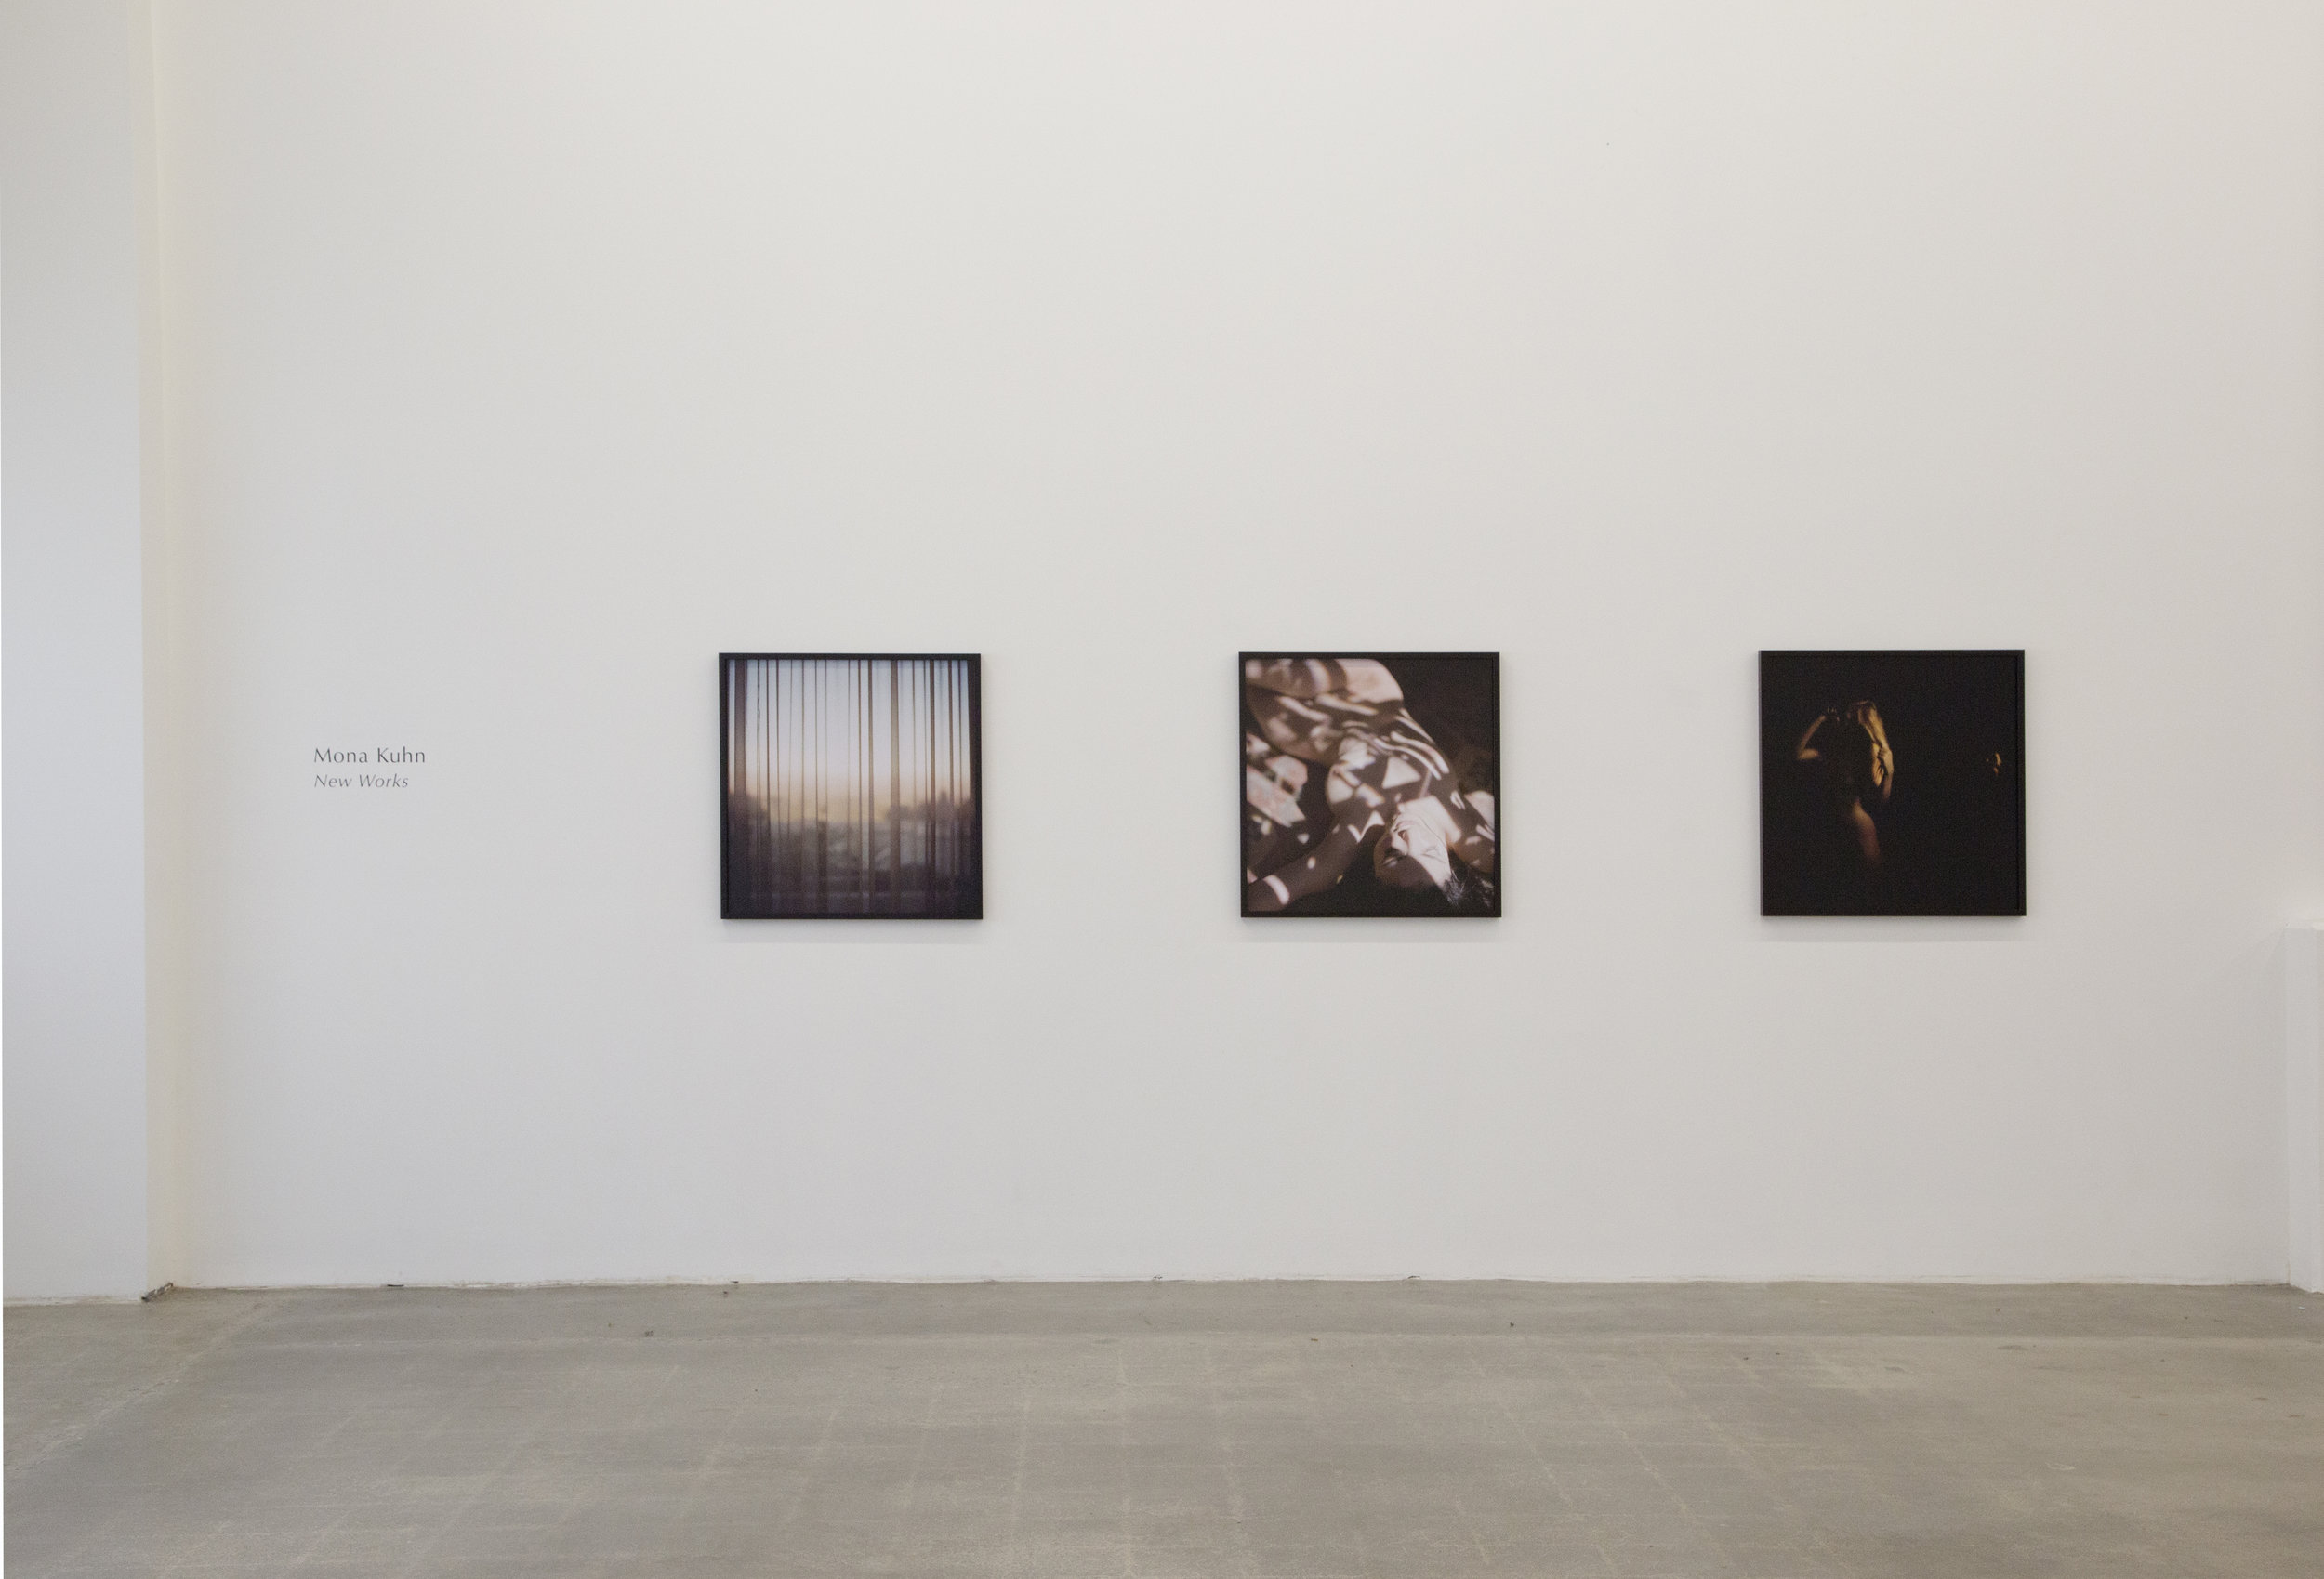 MONA KUHN :  New Works  April 6 - May 14, 2016  EXHIBITION VIEWS  |  PRESS RELEASE